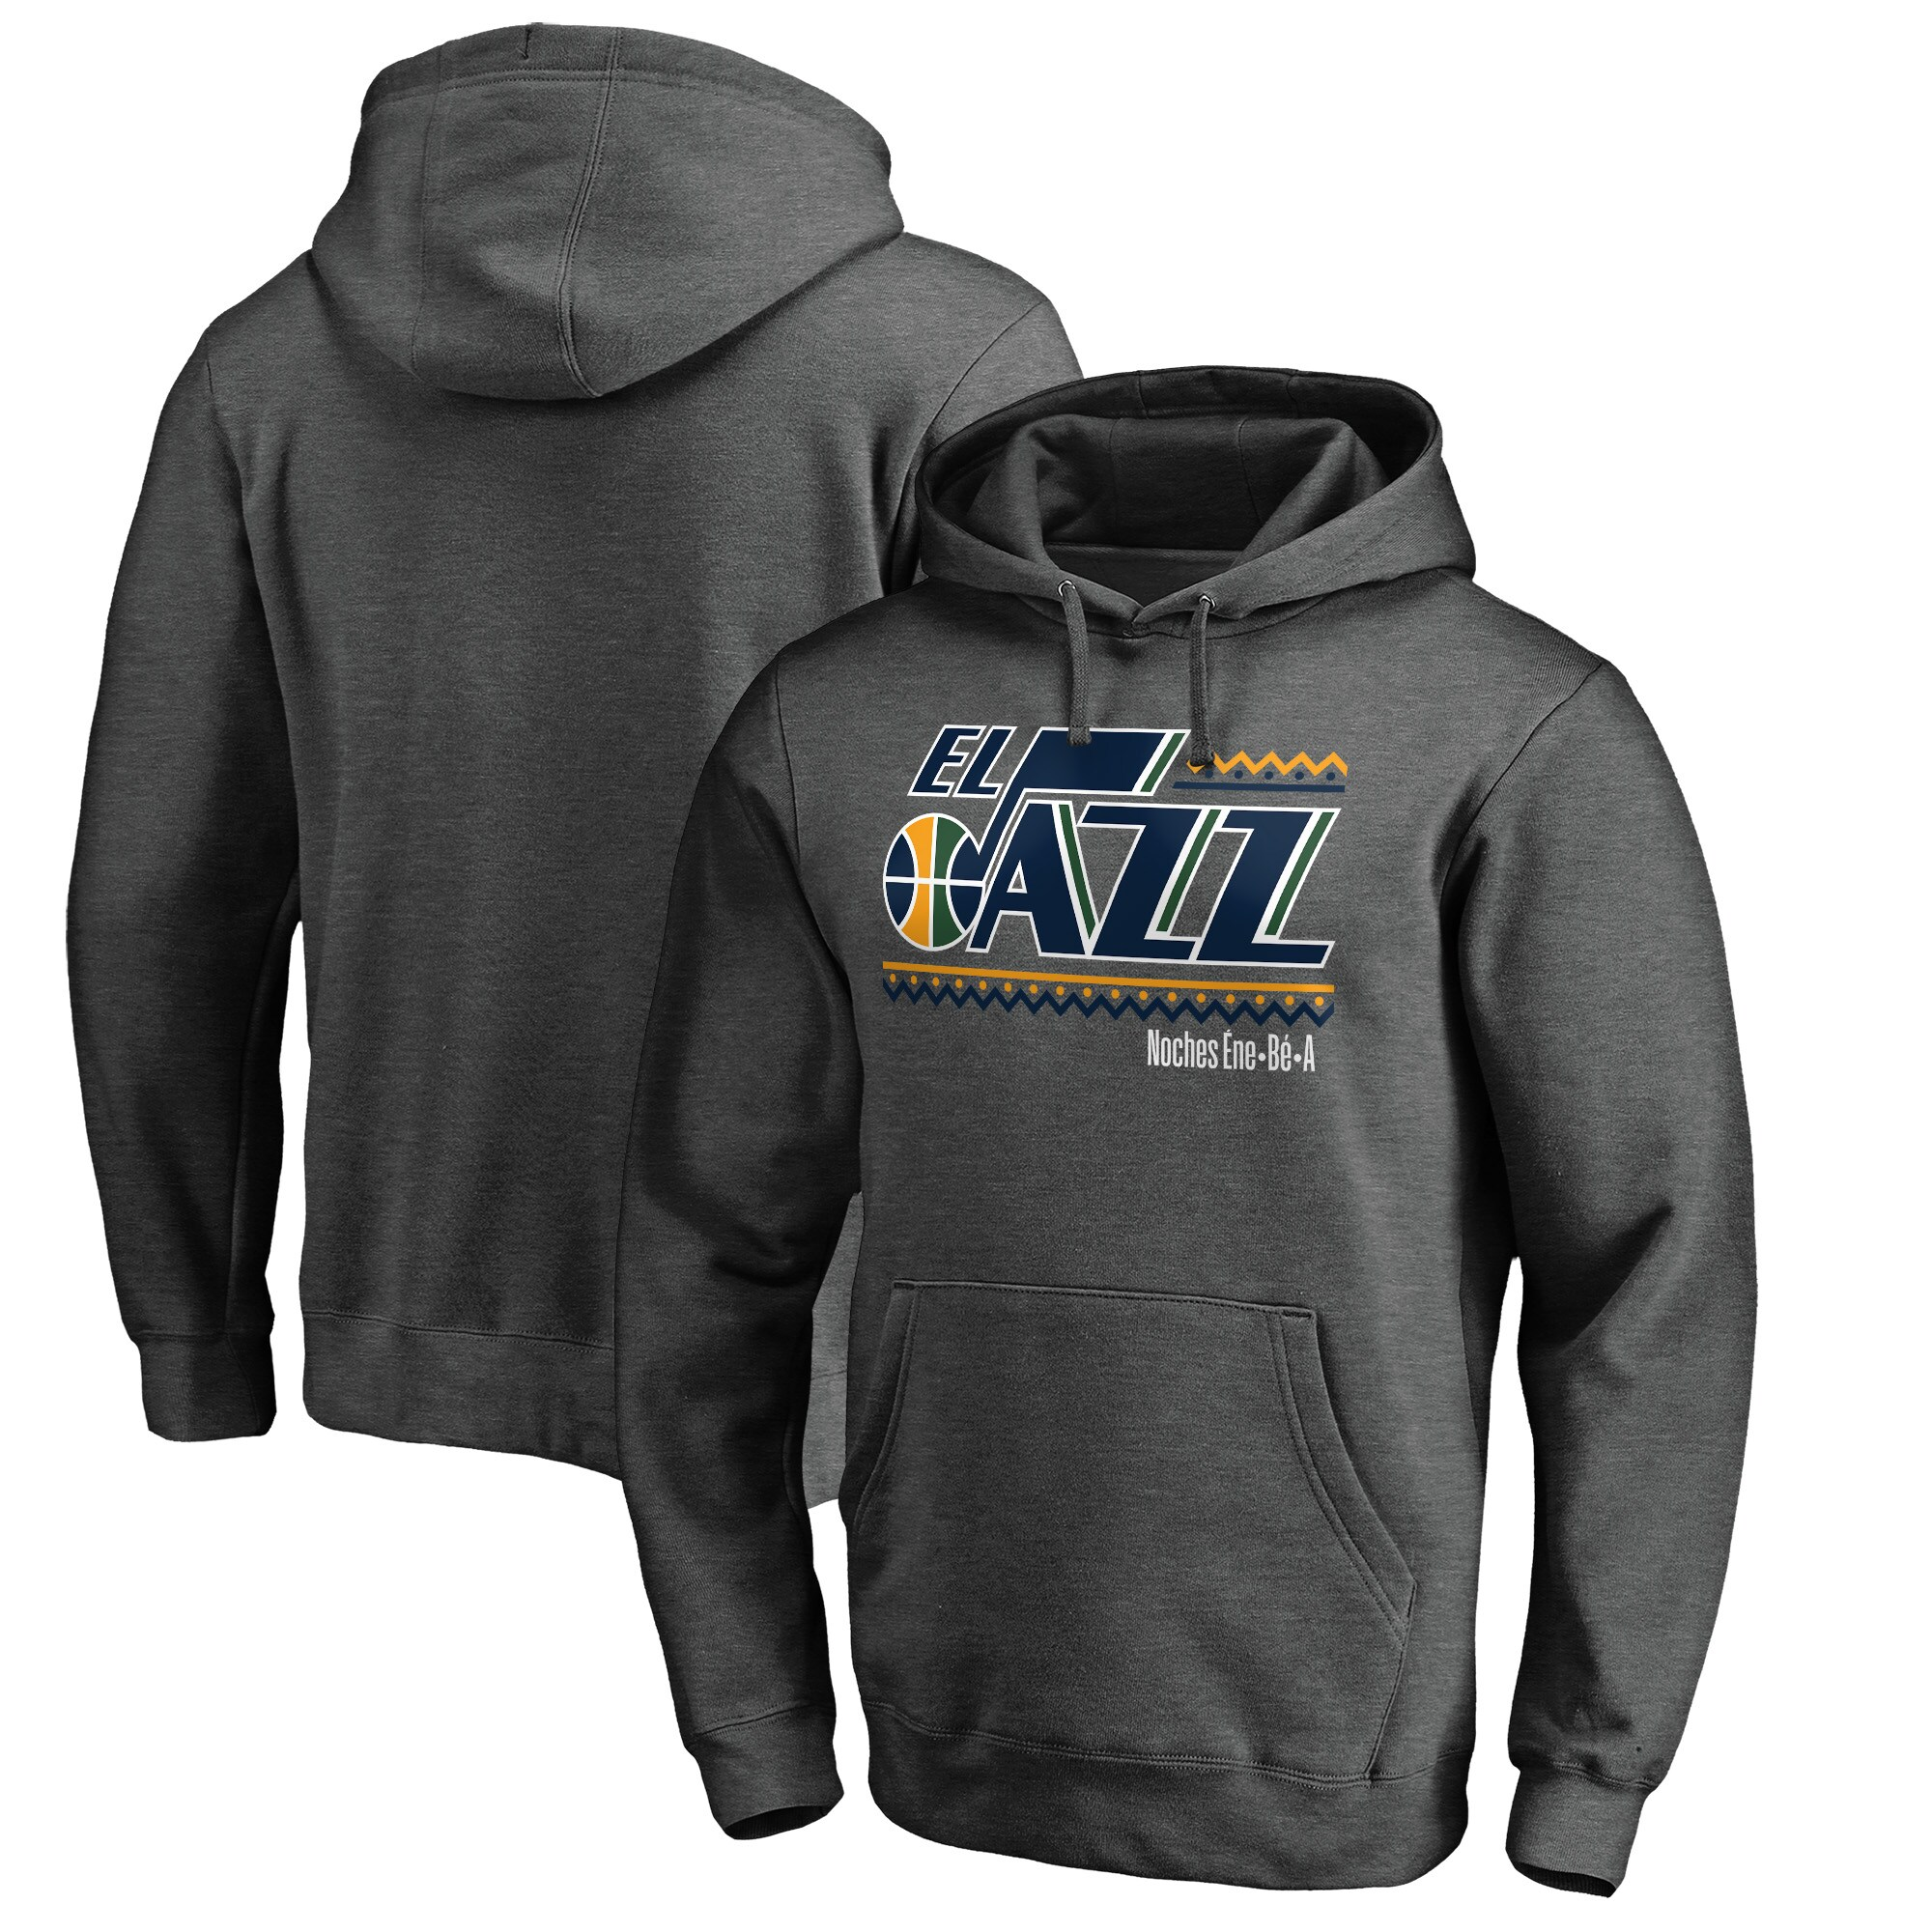 Utah Jazz Fanatics Branded Noches Ene-Be-A Pullover Hoodie - Heather Gray